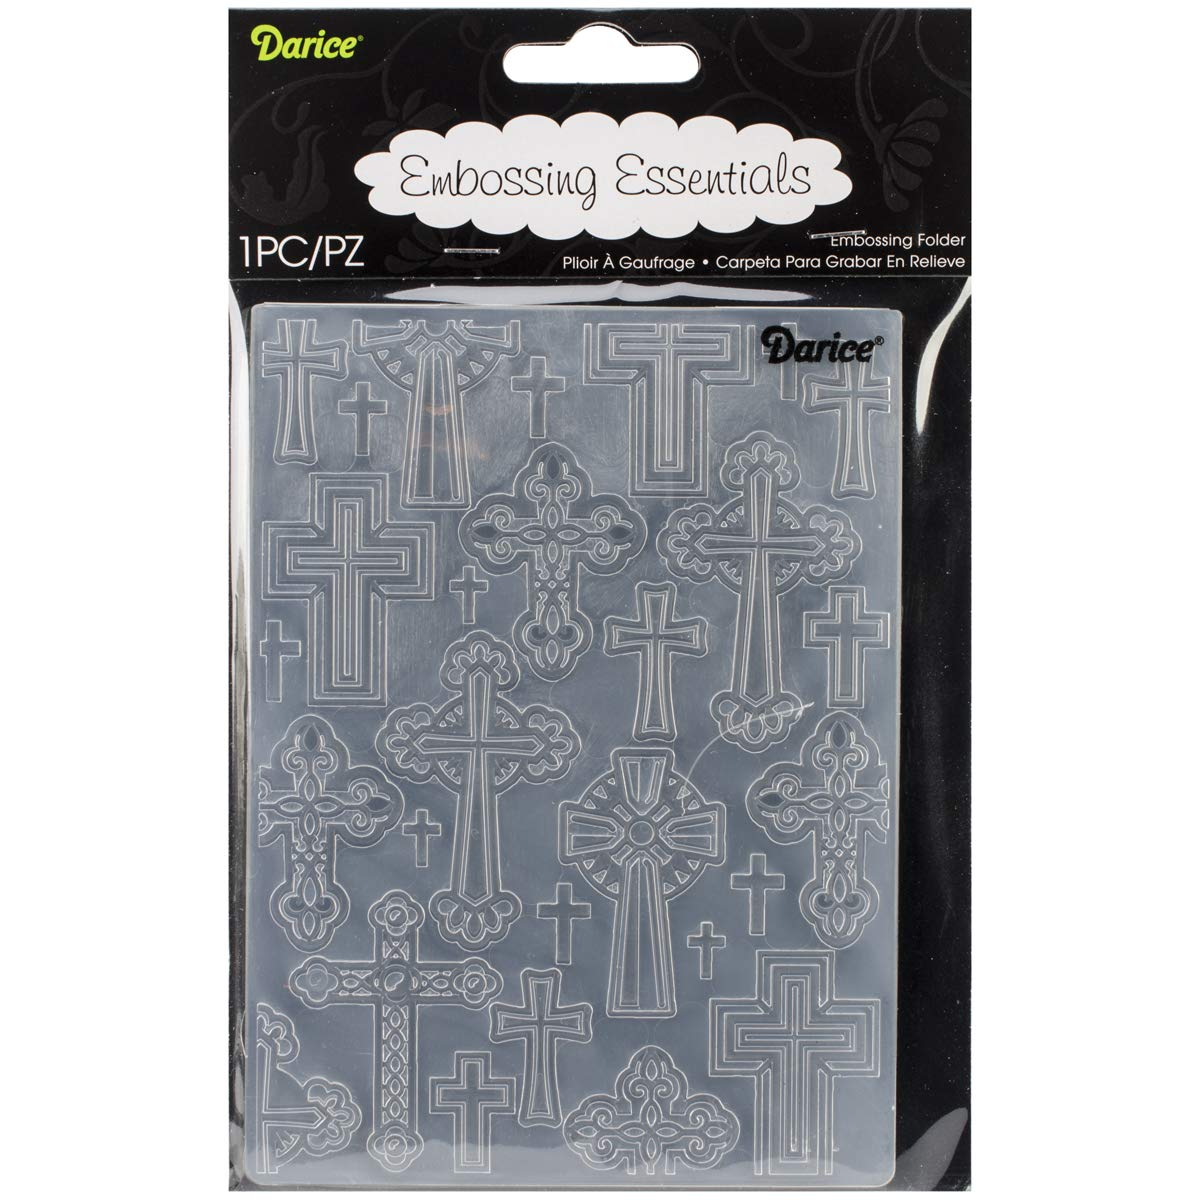 Embossing Folder Crosses 4.25 X 5.75 Inches (8 Pack)